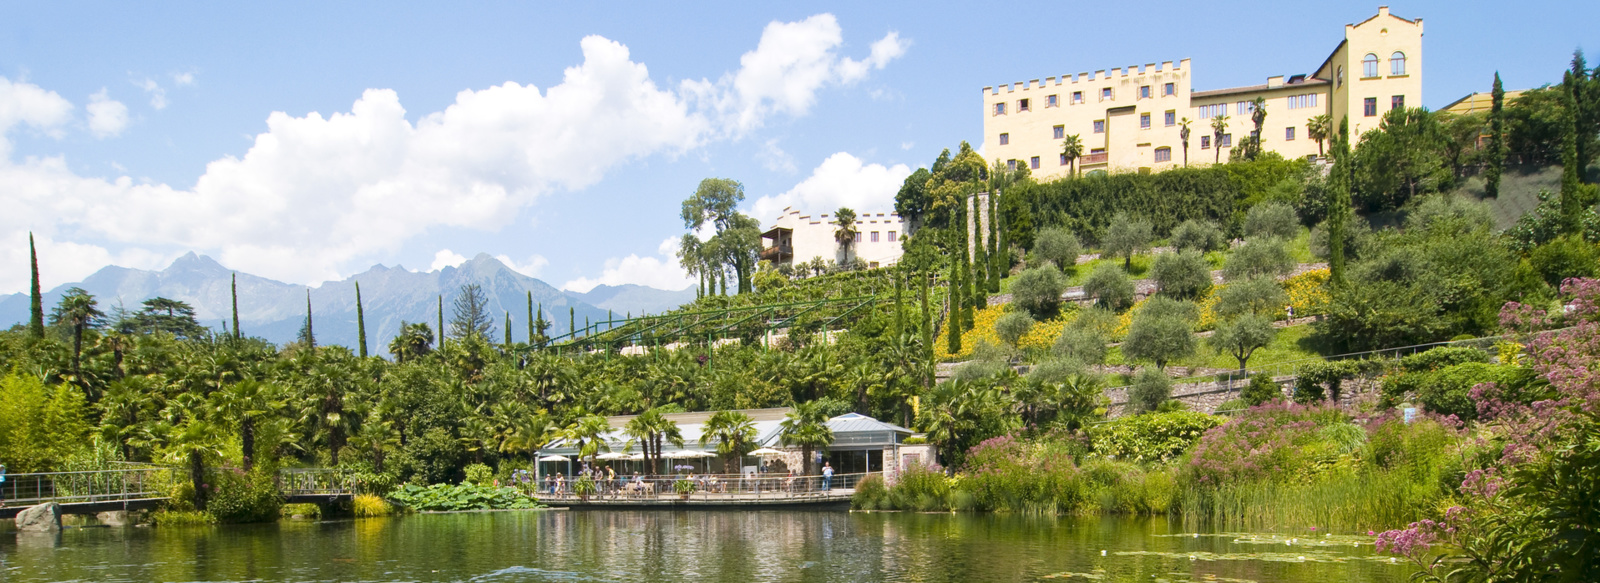 Visit the botanical gardens in Merano near Lana